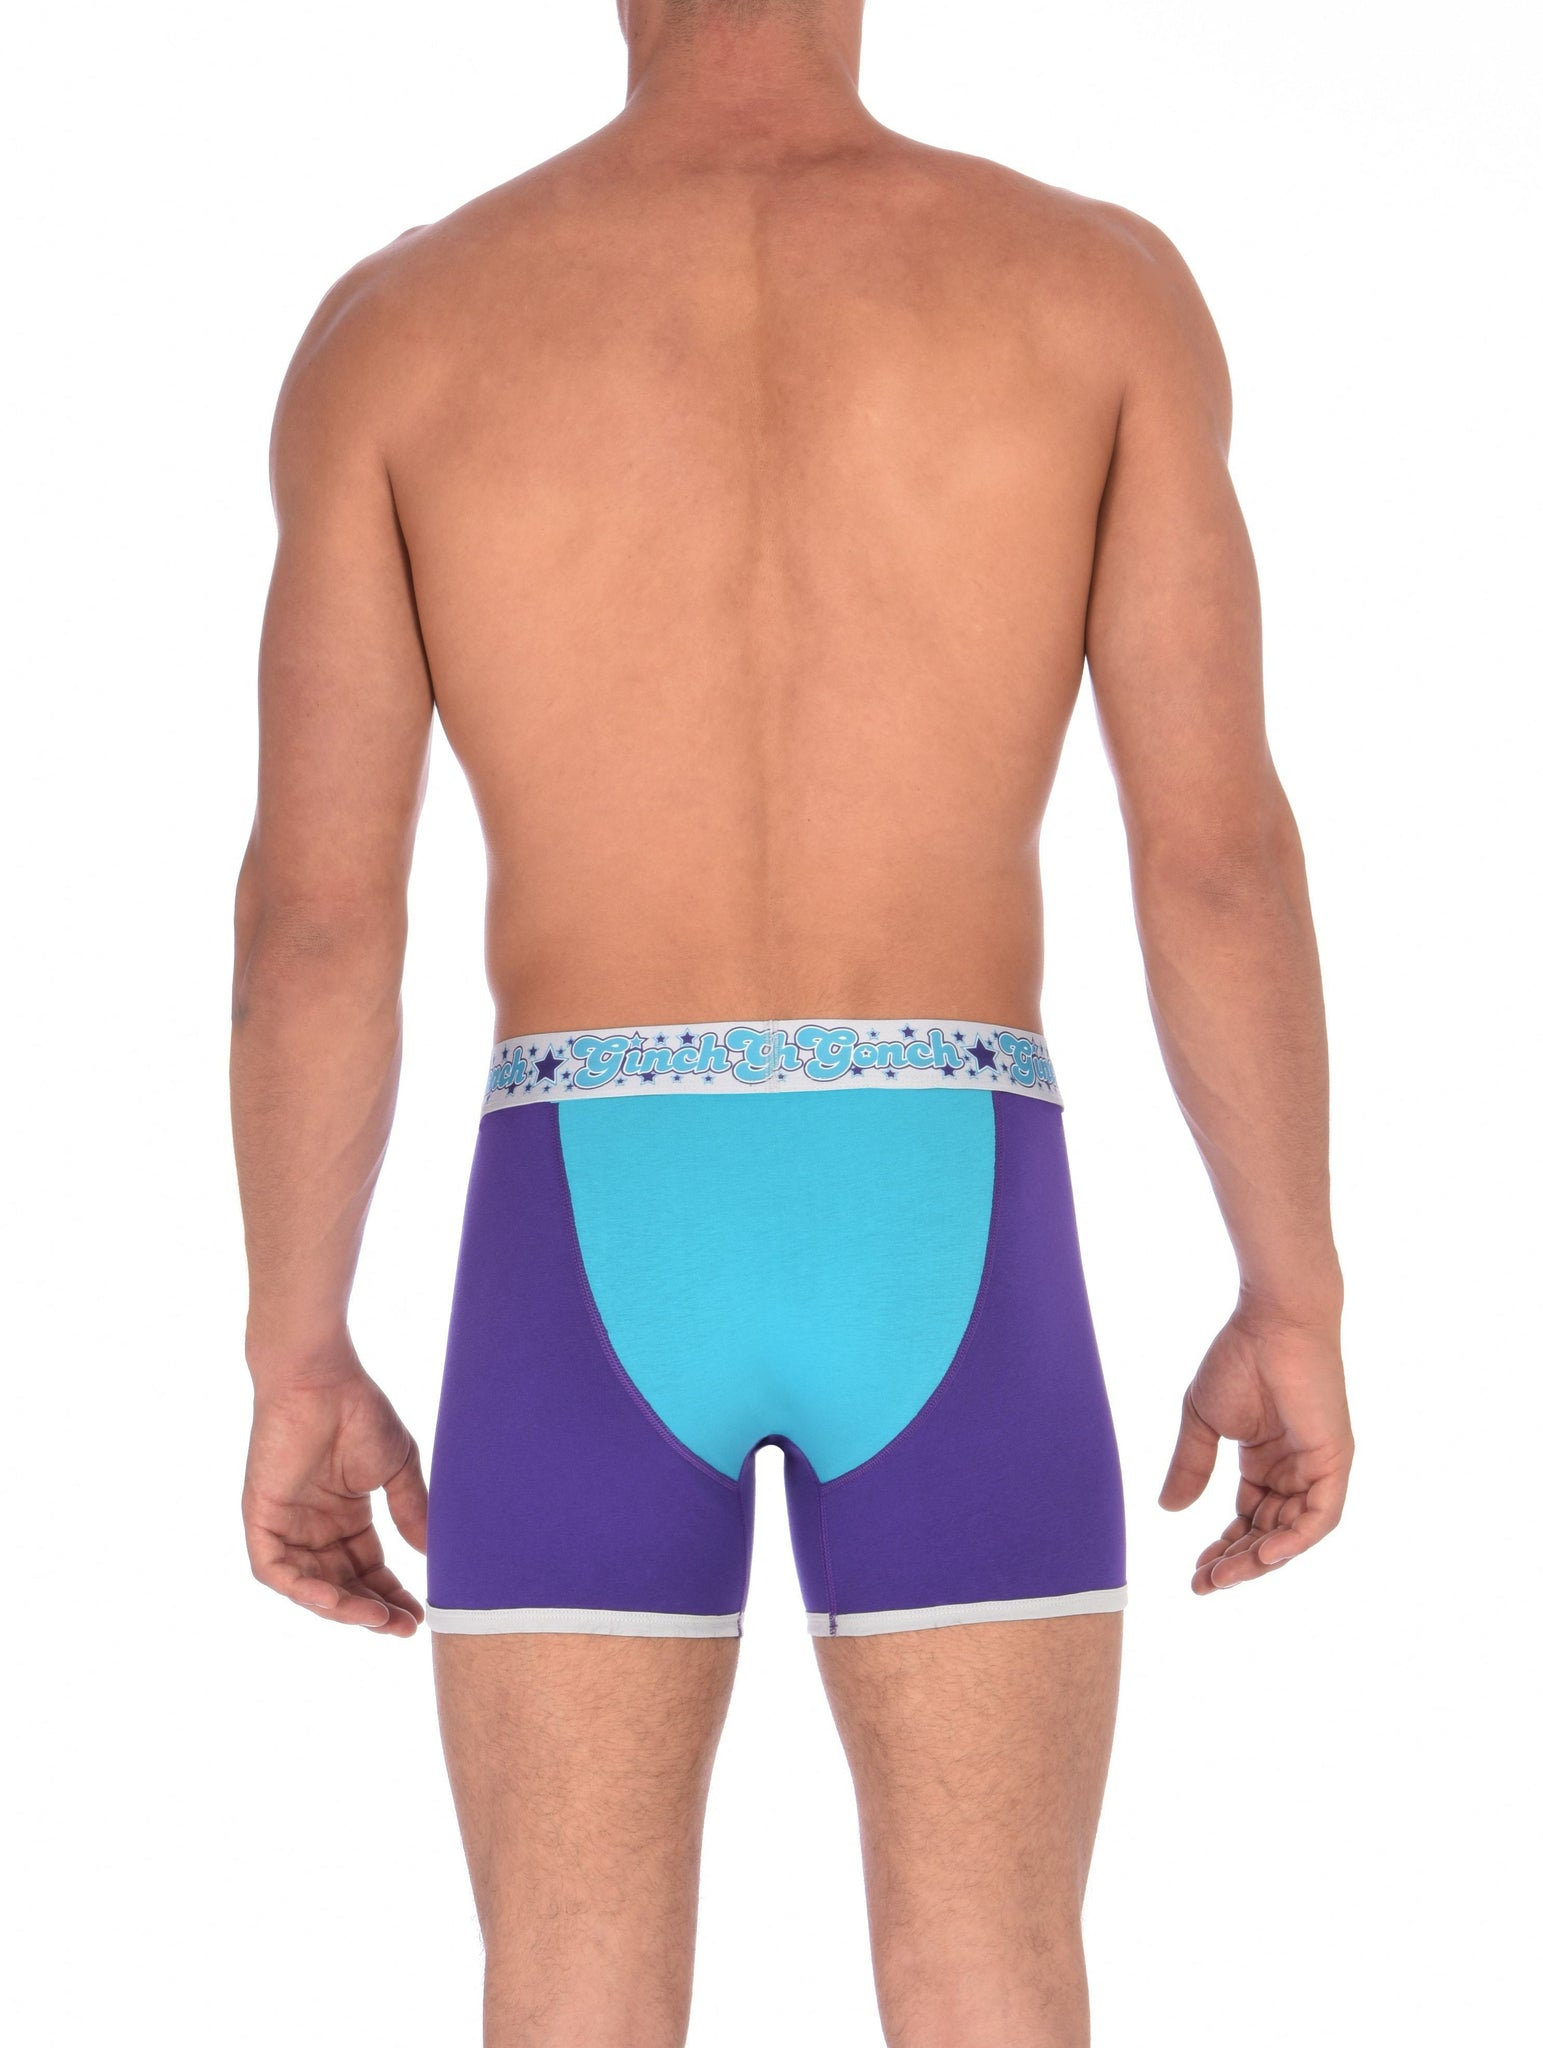 GG Ginch Gonch Purple Haze Boxer Brief y front - Men's Underwear purple and aqua panels with grey trim and silver printed waistband back